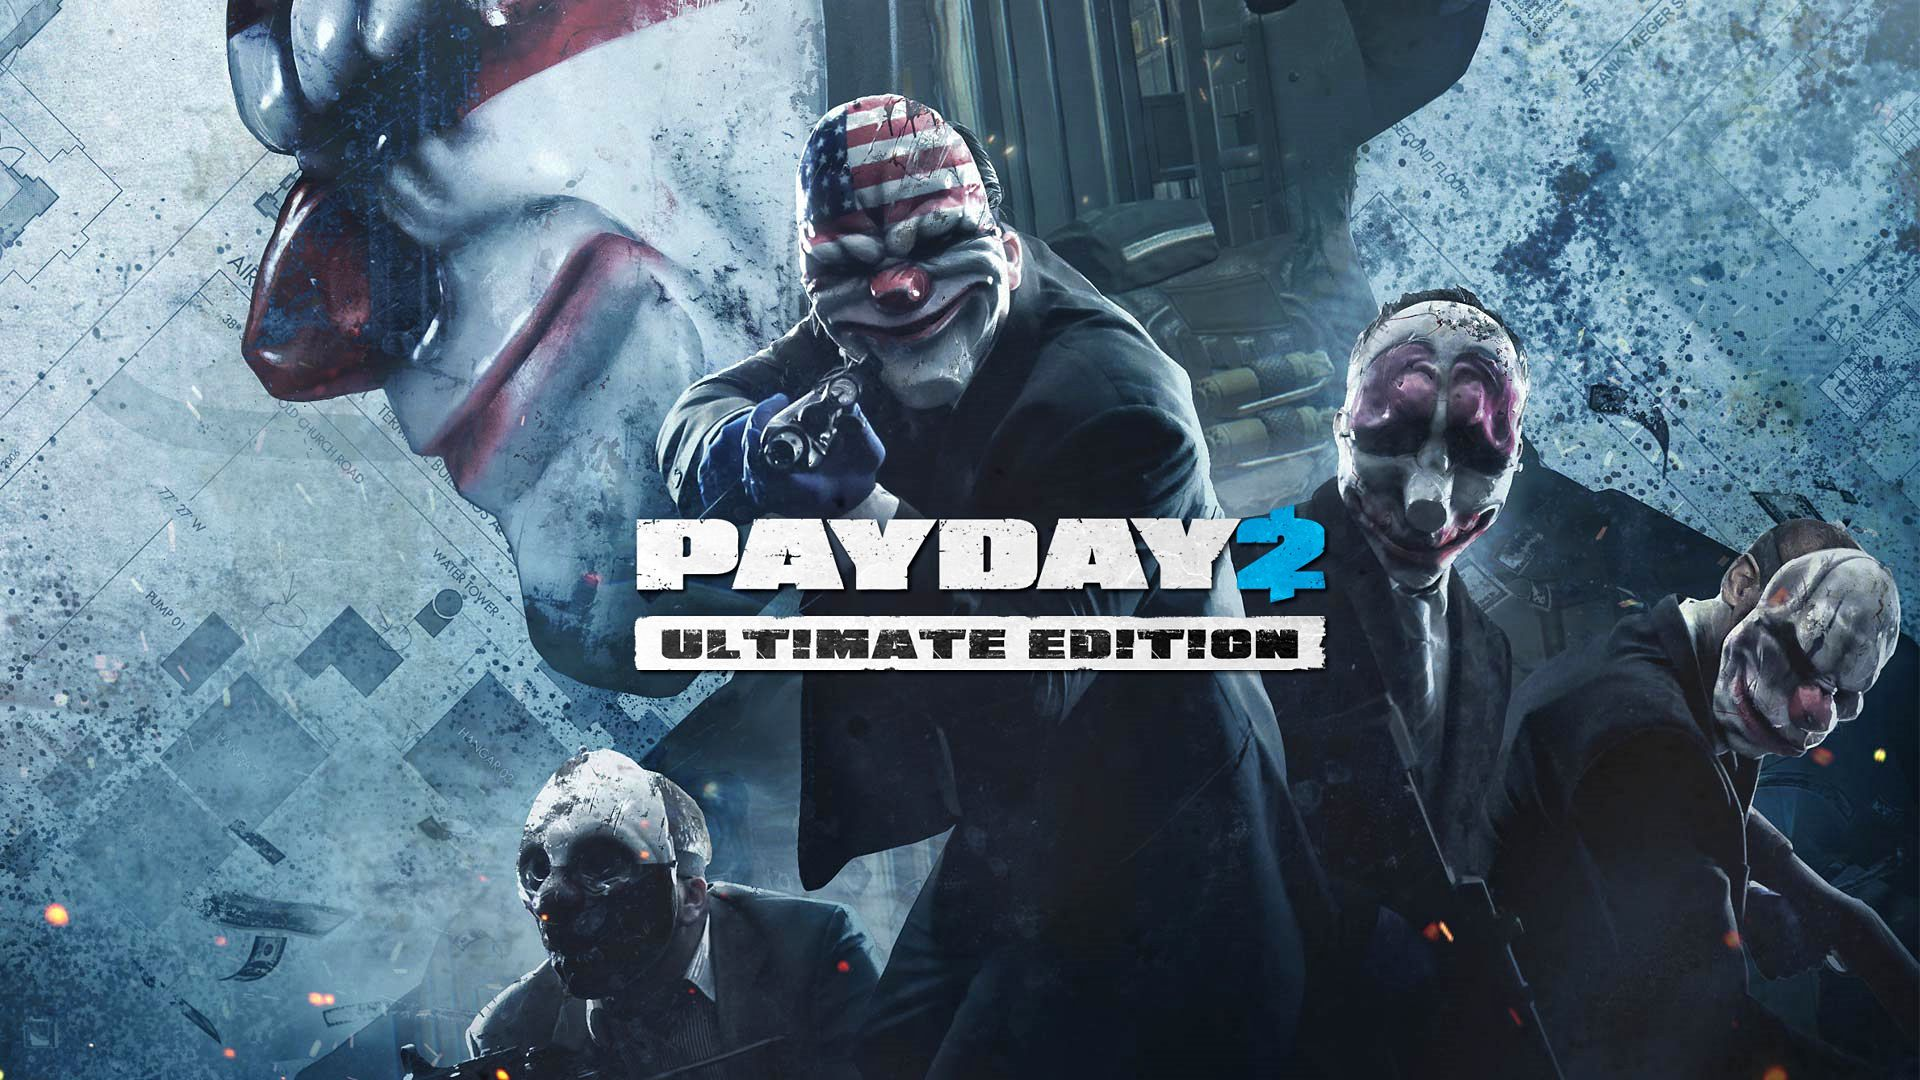 Payday 2 Ultimate Edition Wallpapers High Quality